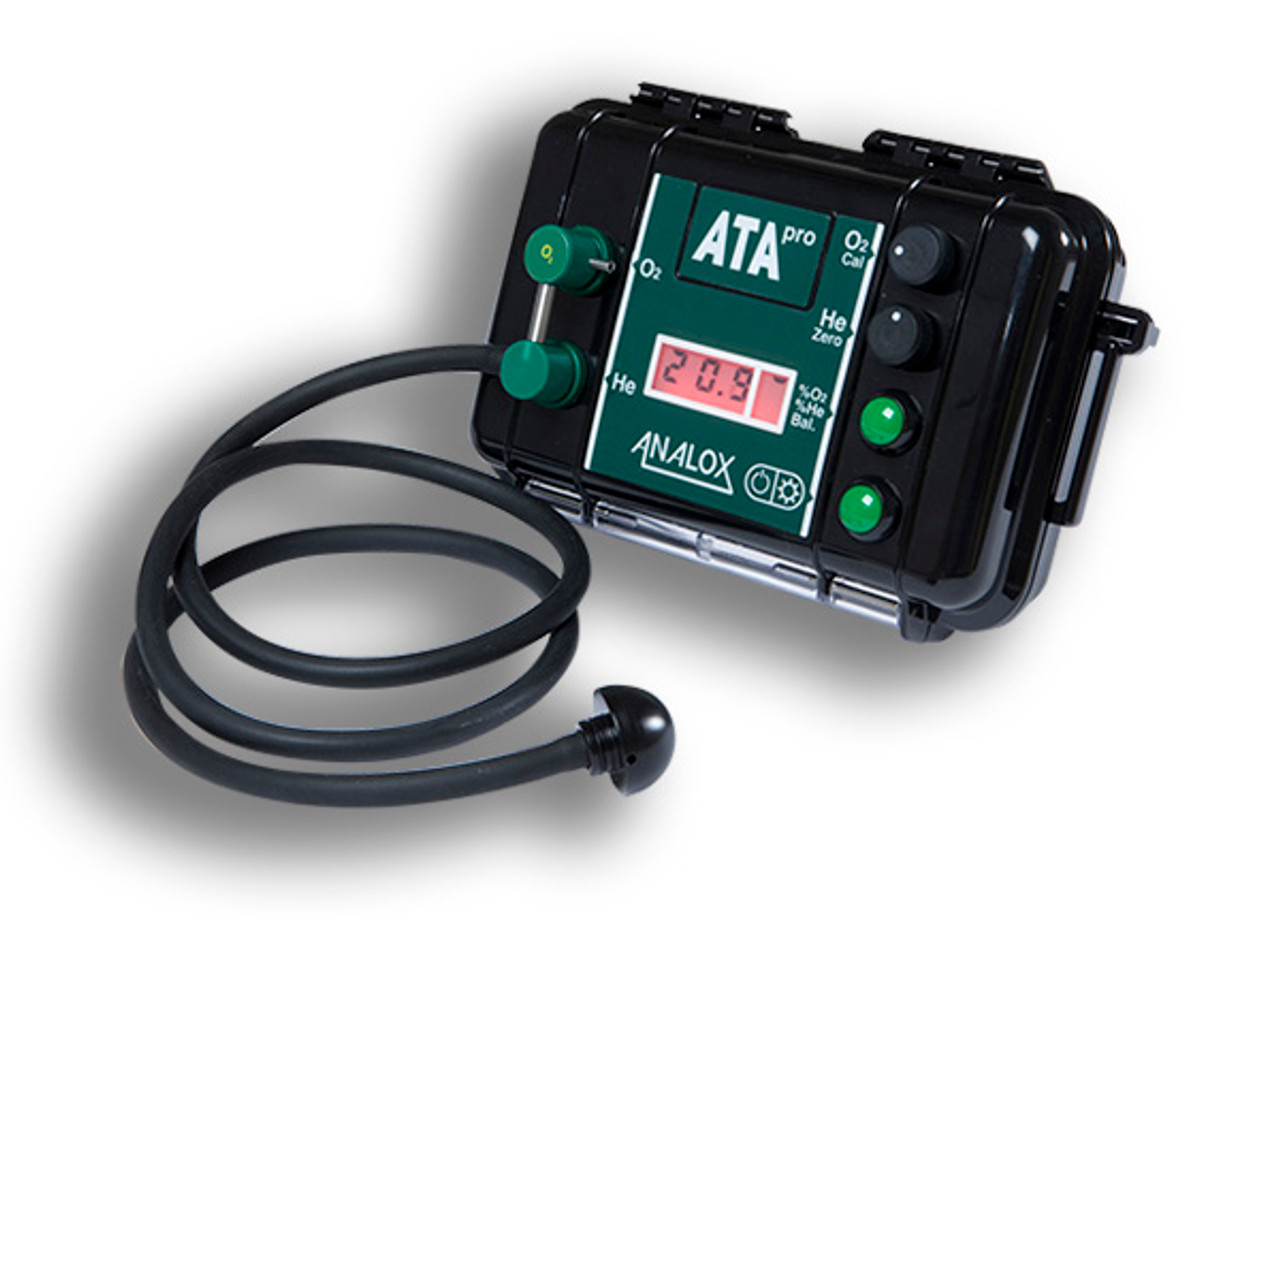 Analox ATA PRO Trimix Analyzer for Tech Scuba Diving